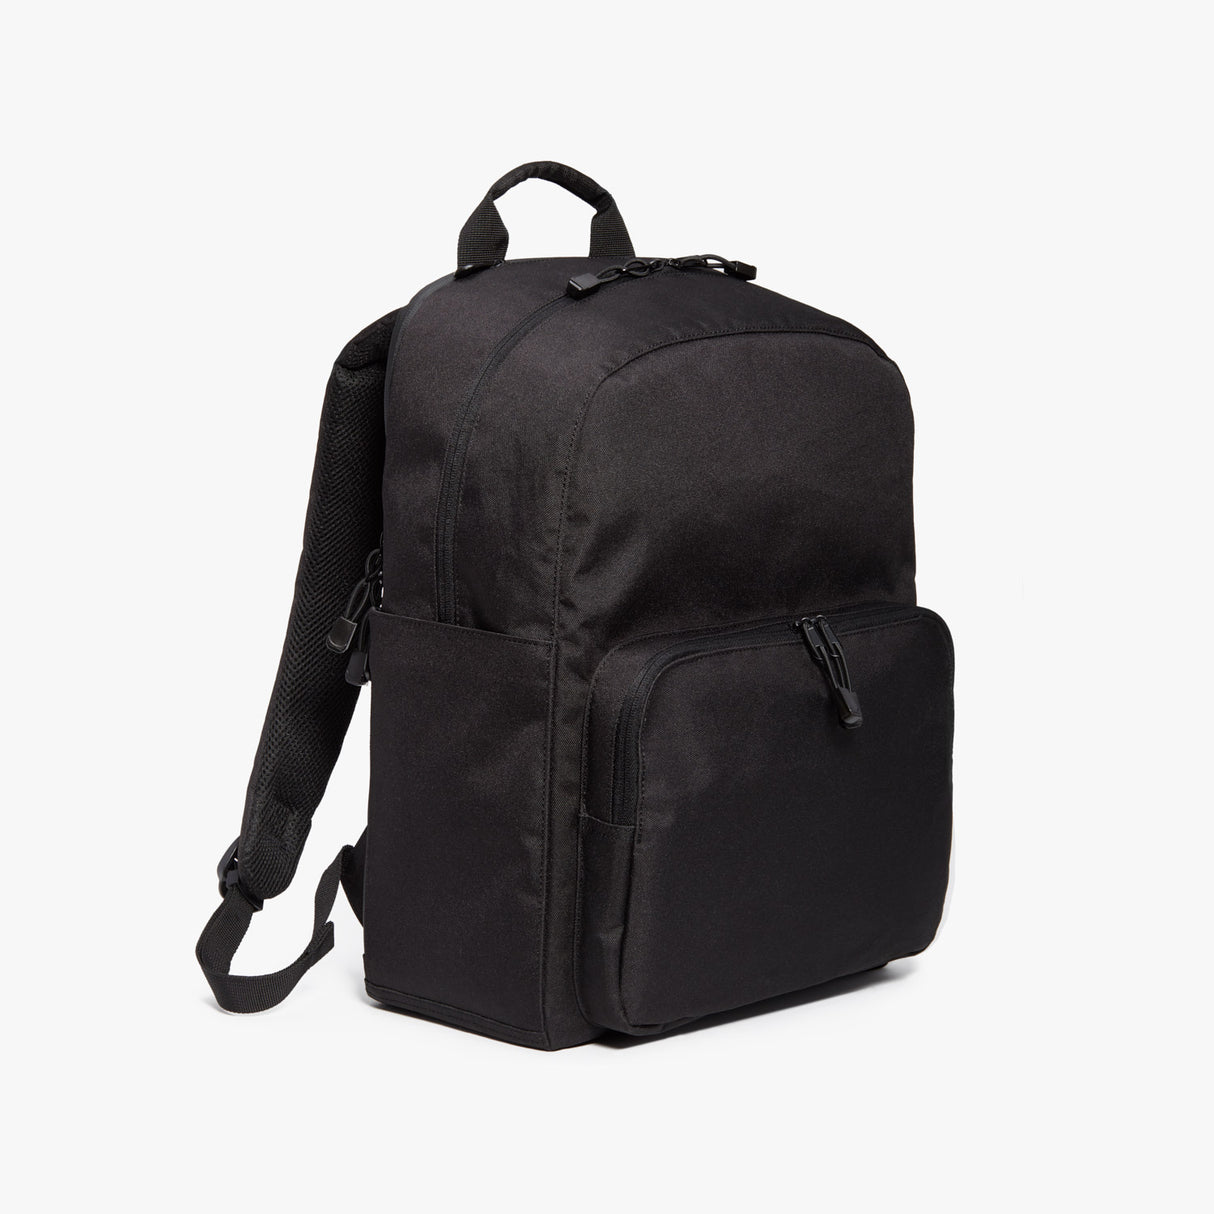 Side - Hanover Deluxe 2 - 600D Recycled Poly - Onyx - Backpack - Lo & Sons